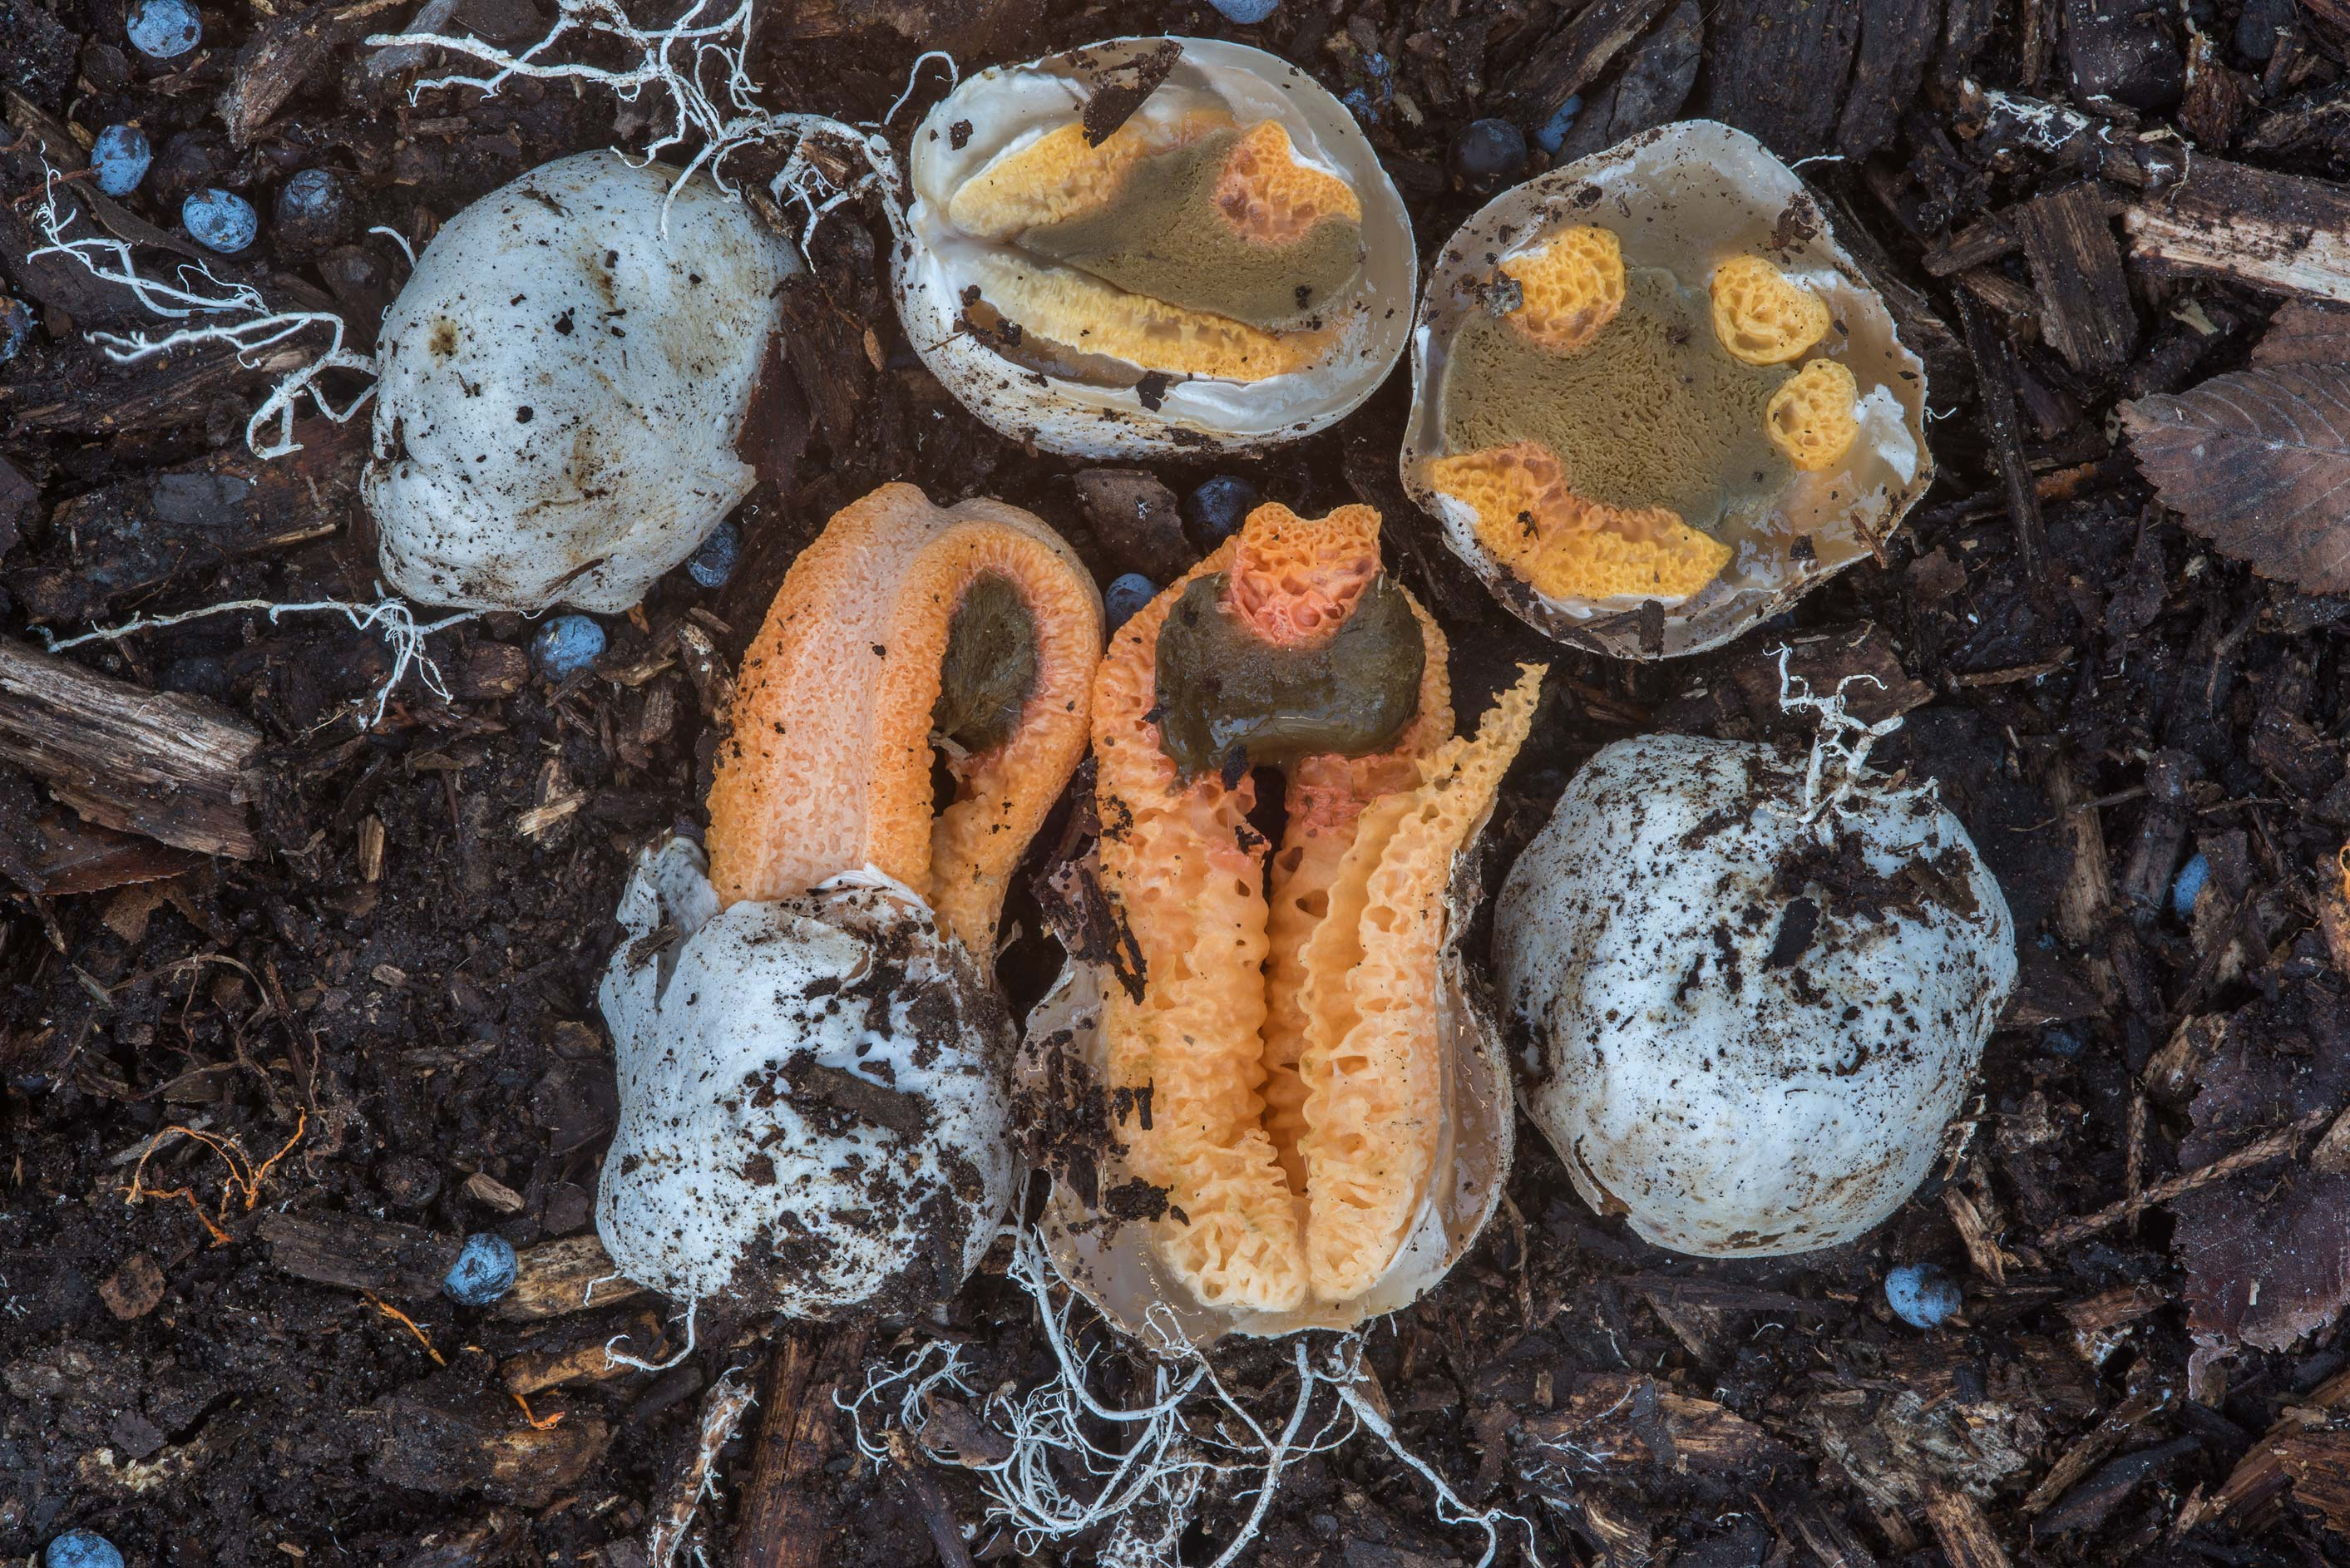 Eggs and young columned stinkhorn mushrooms...Bee Creek Park. College Station, Texas